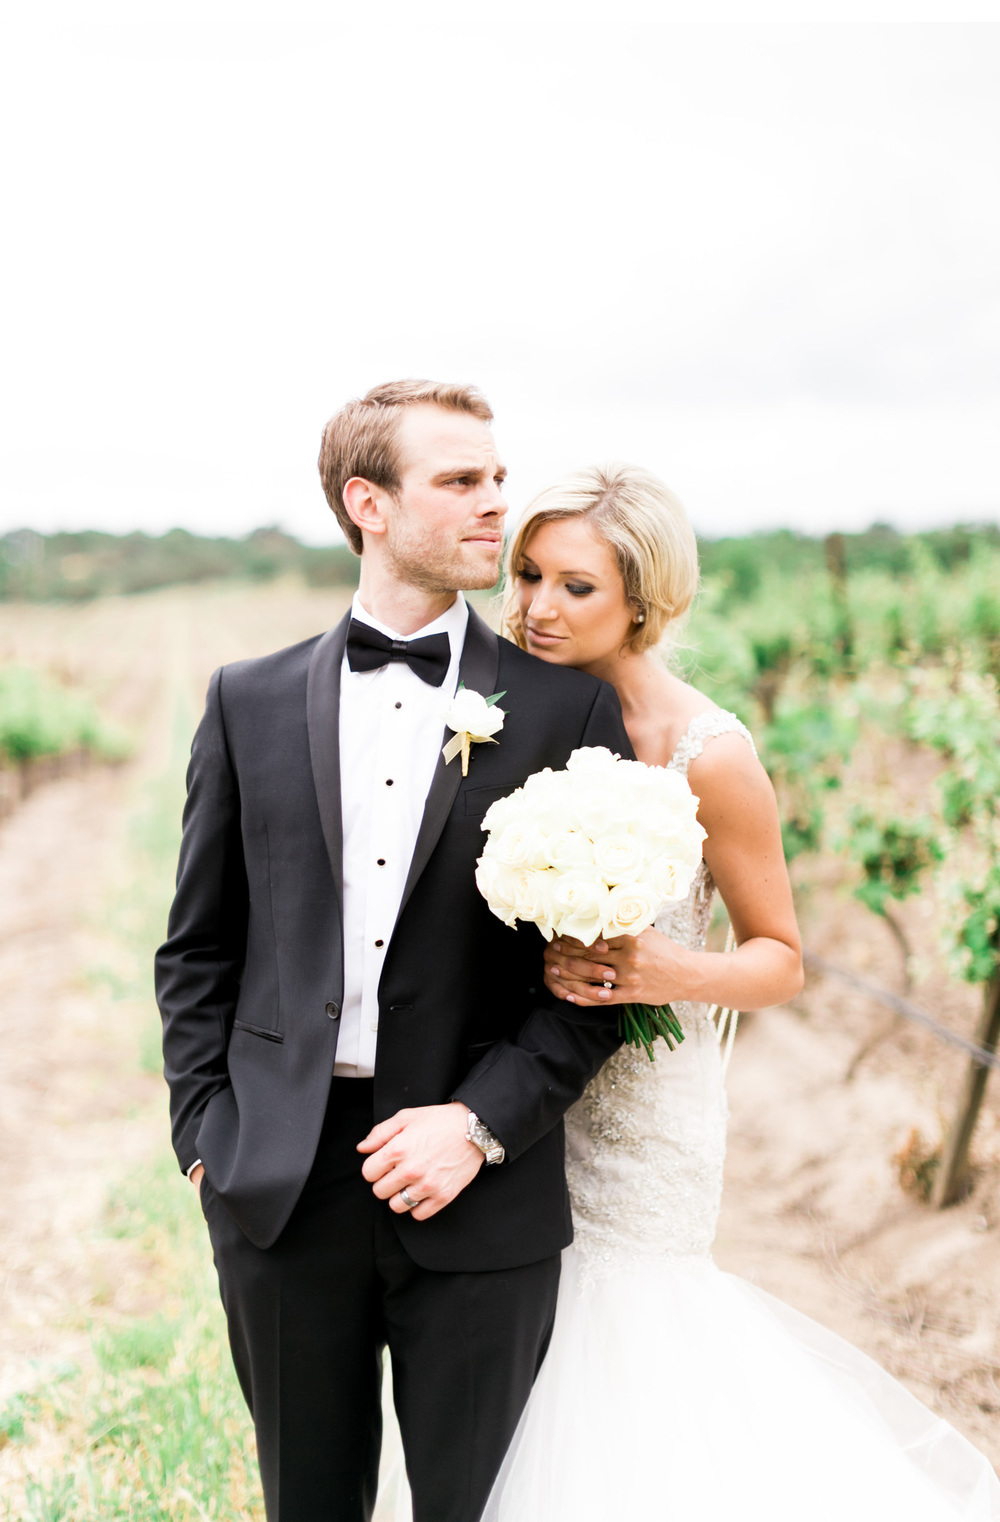 Style-Me-Pretty-Vineyard-Wedding-Natalie-Schutt-Photography_10.jpg